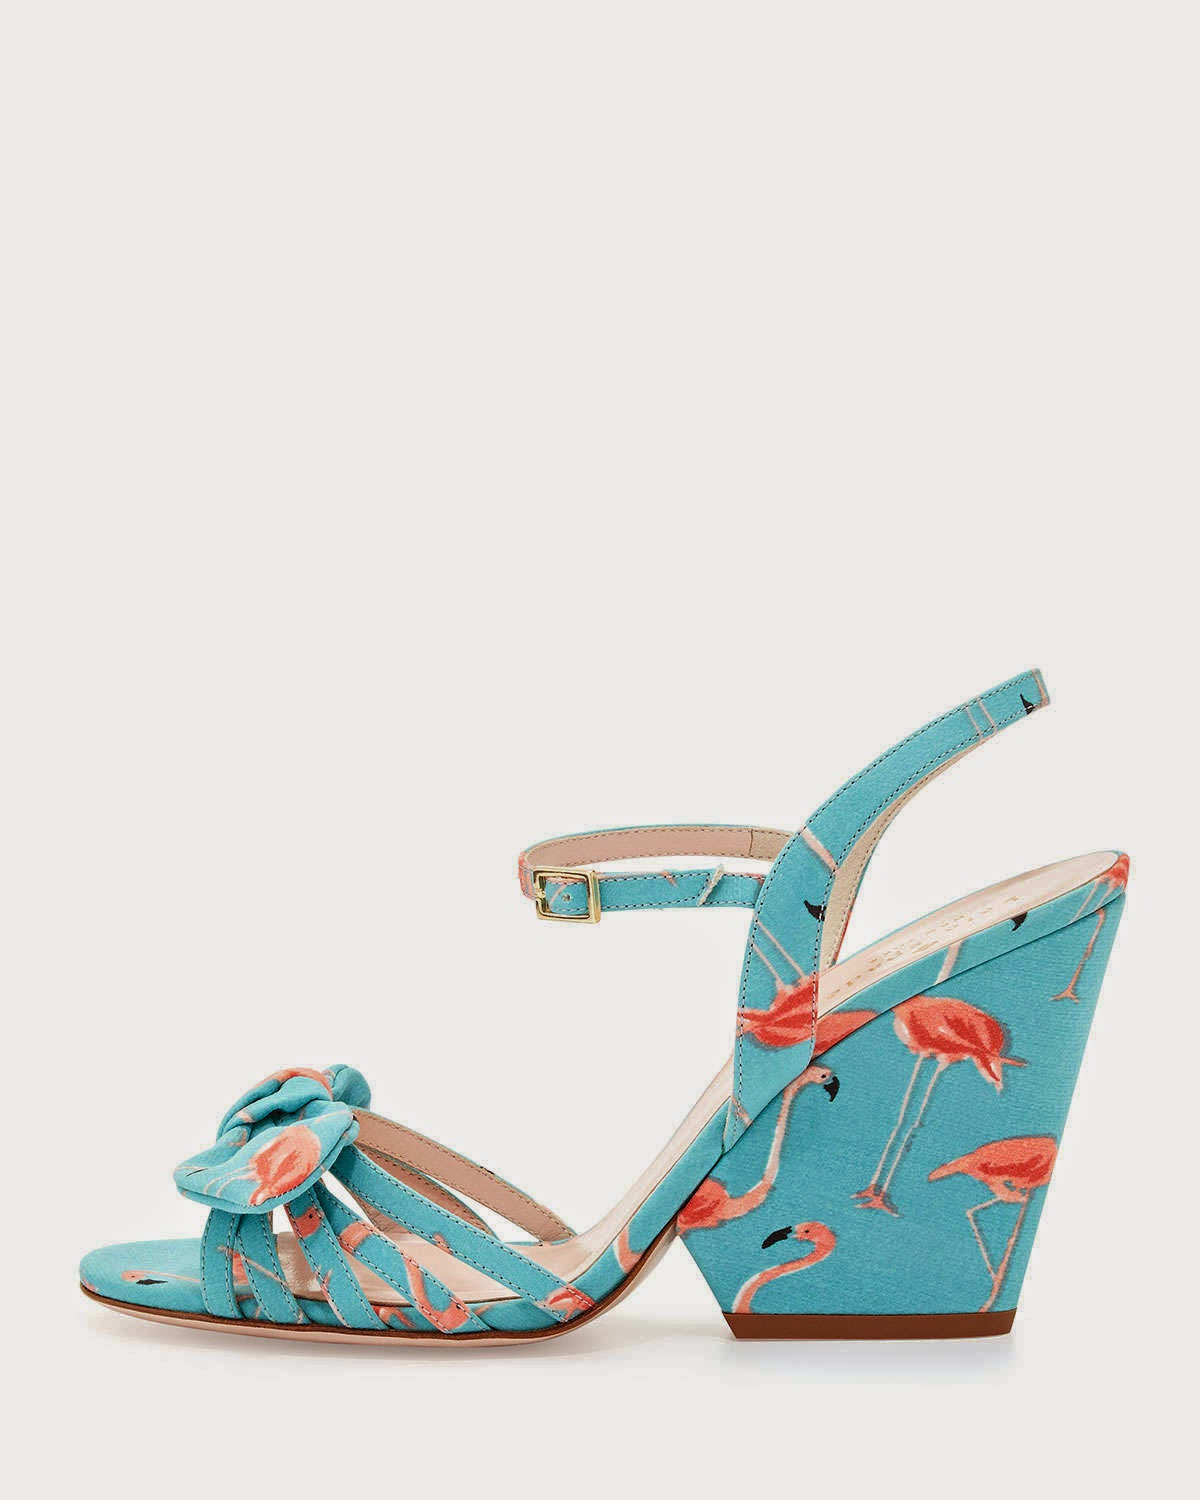 Kate Spade Flamingo Wedges